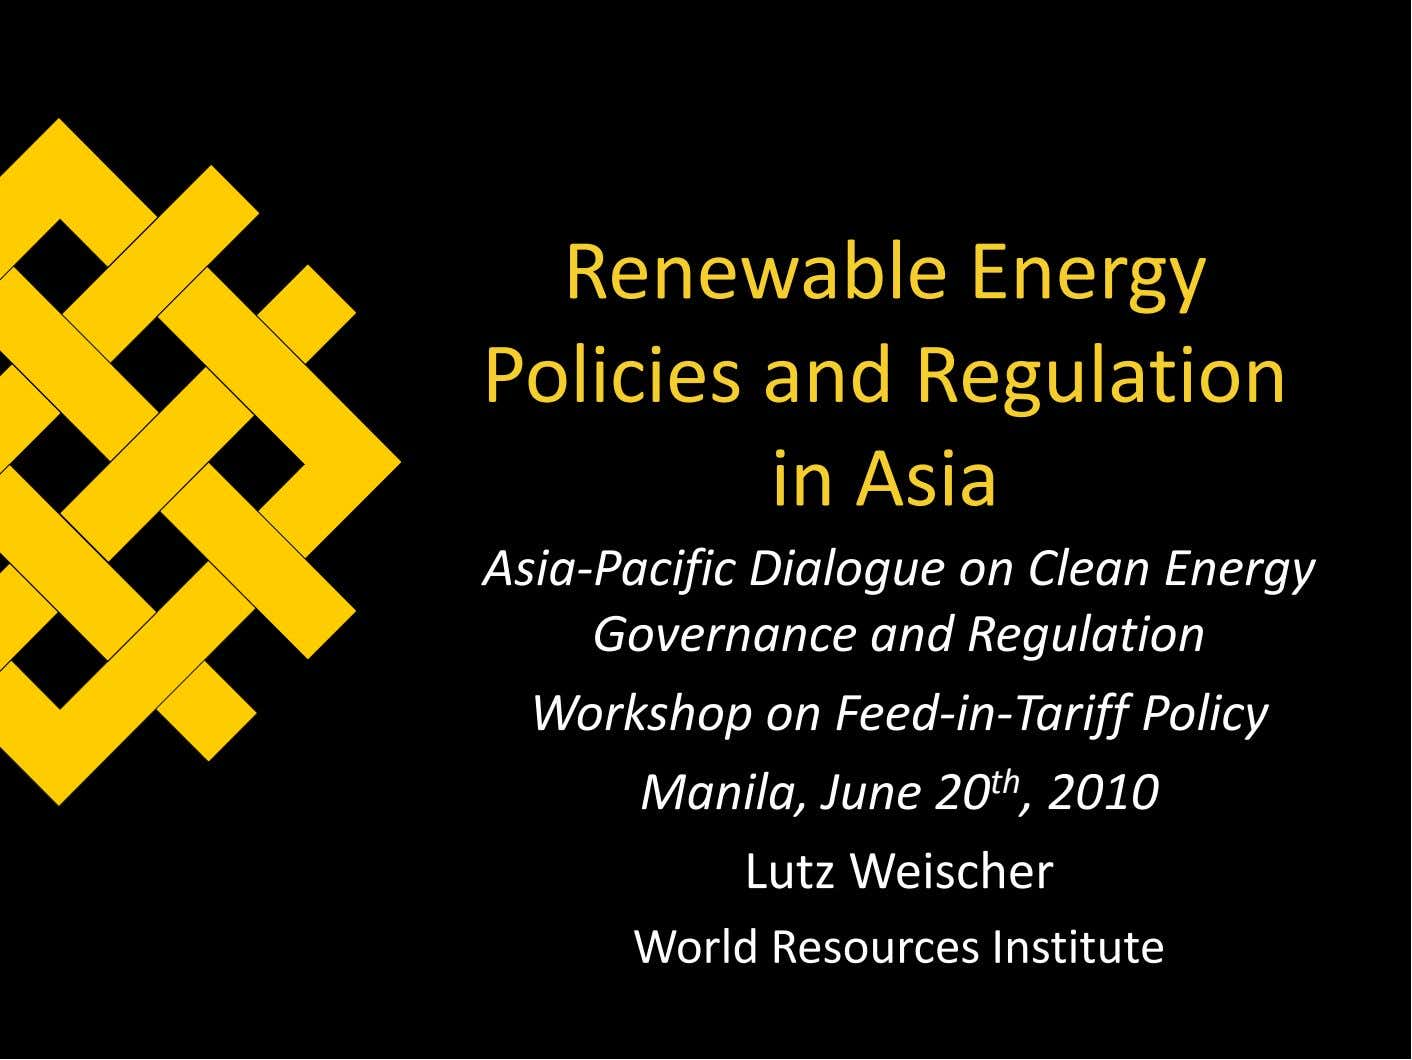 Renewable Energy Policies and Regulation in Asia Asia-Pacific Dialogue on Clean Energy Governance and Regulation